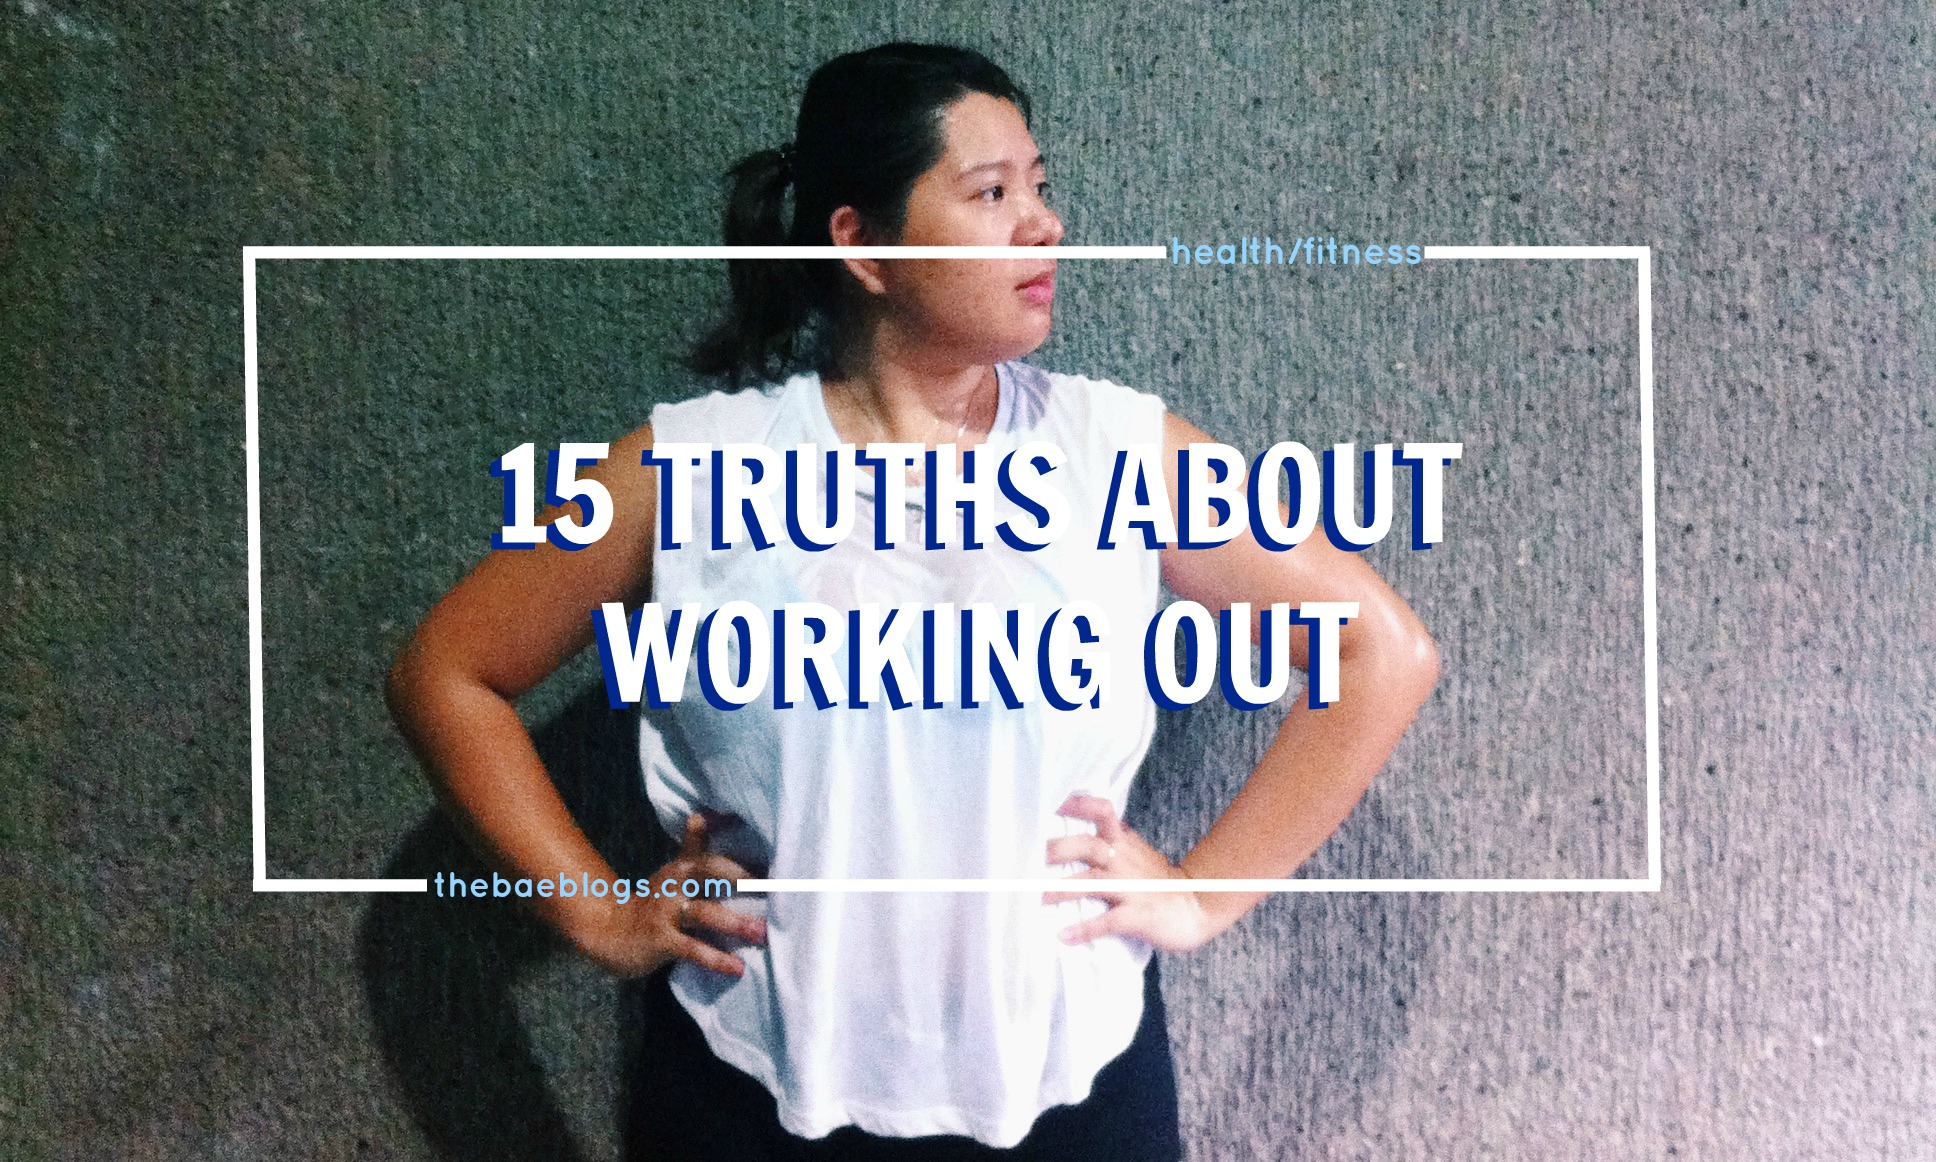 15 Truths About Working Out